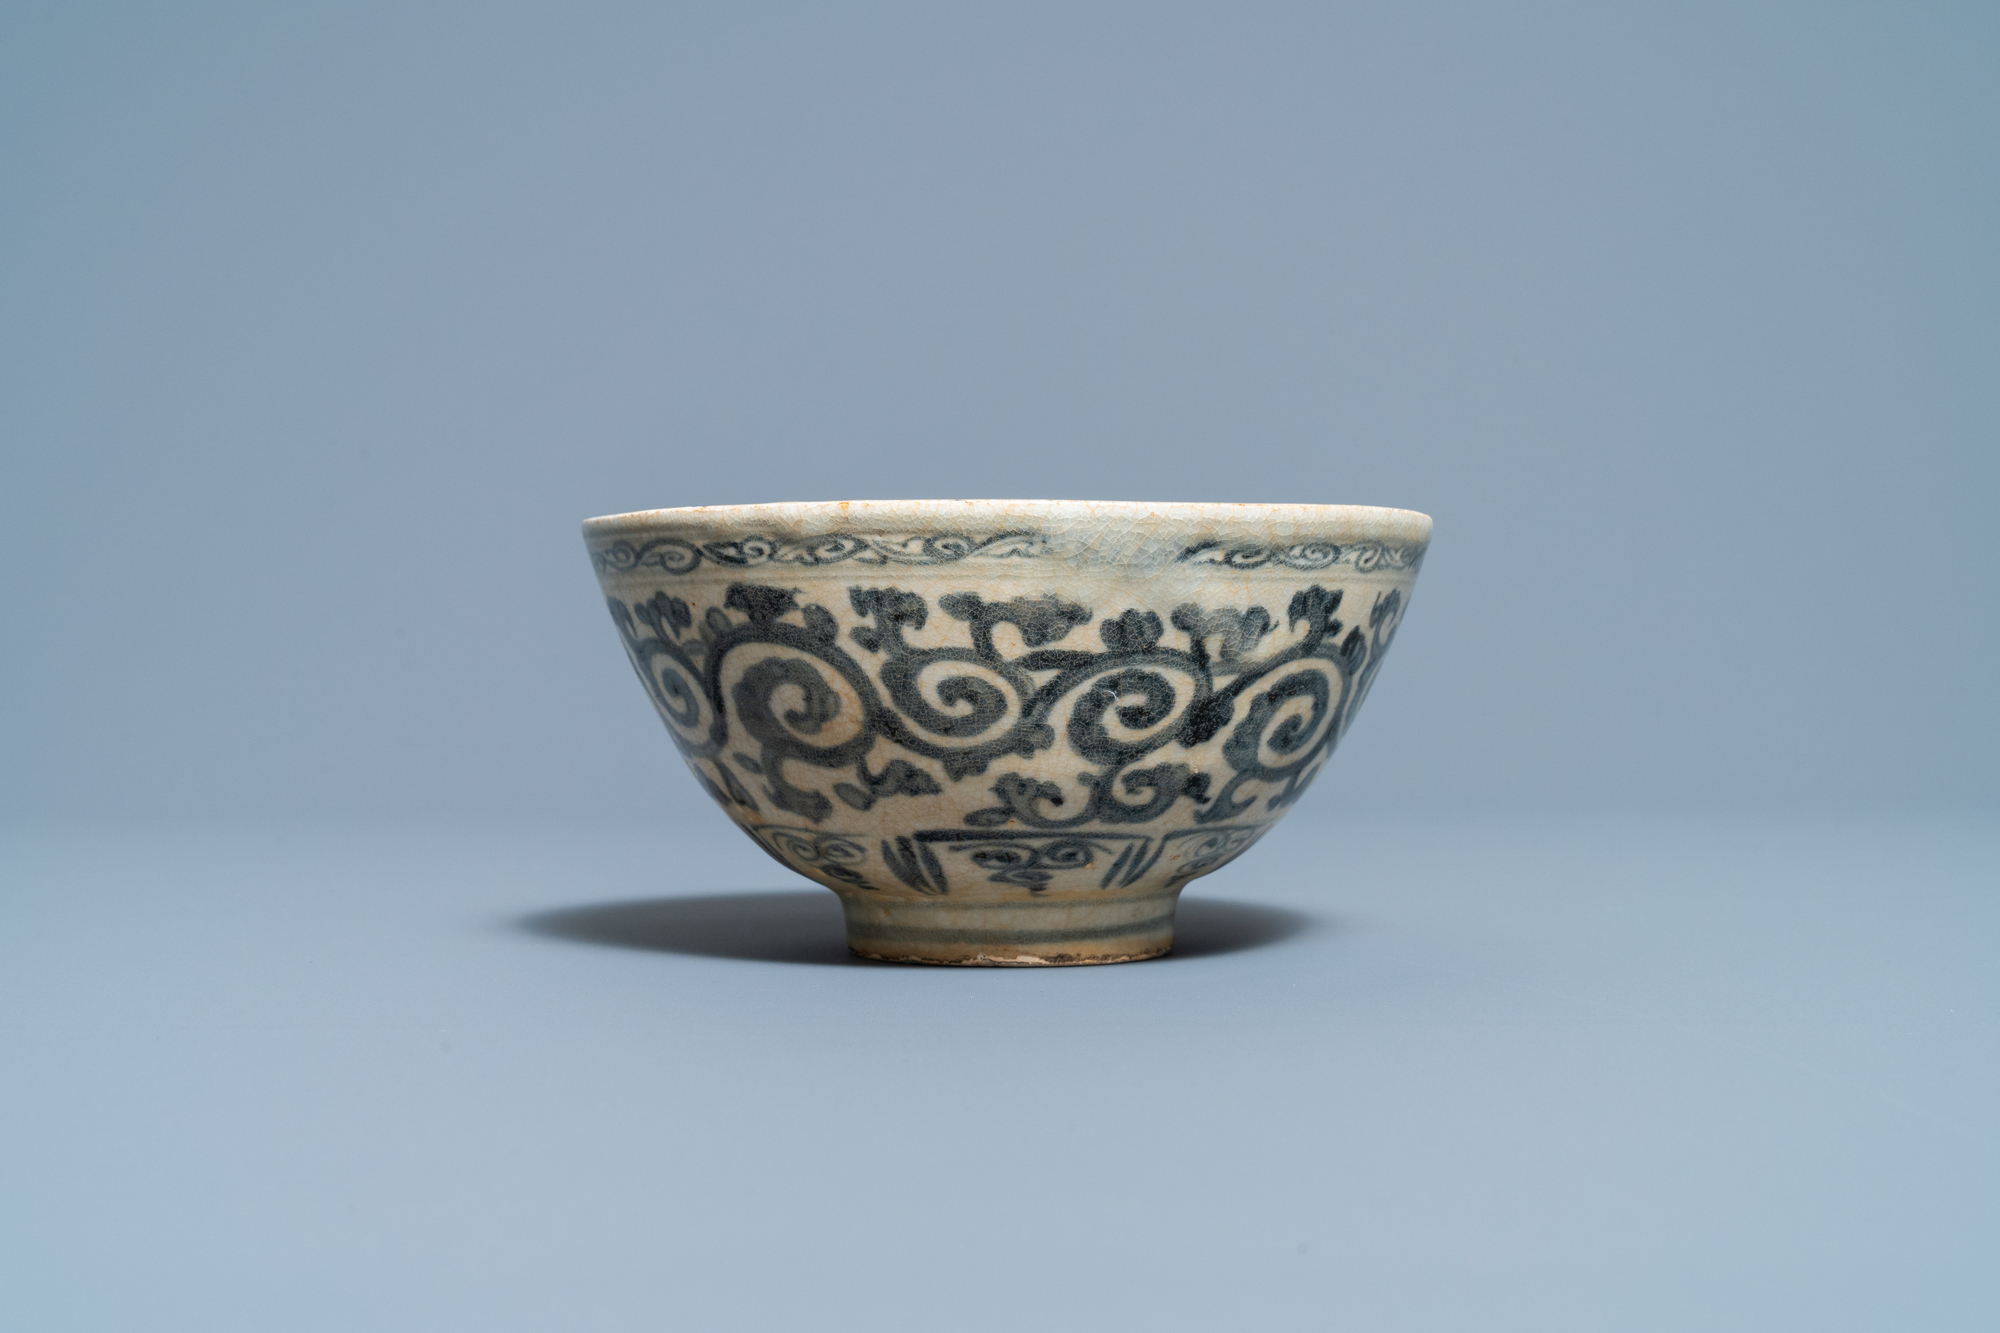 Four blue and white Vietnamese or Annamese ceramics and a Chinese jarlet, 15/16th C. - Image 4 of 12